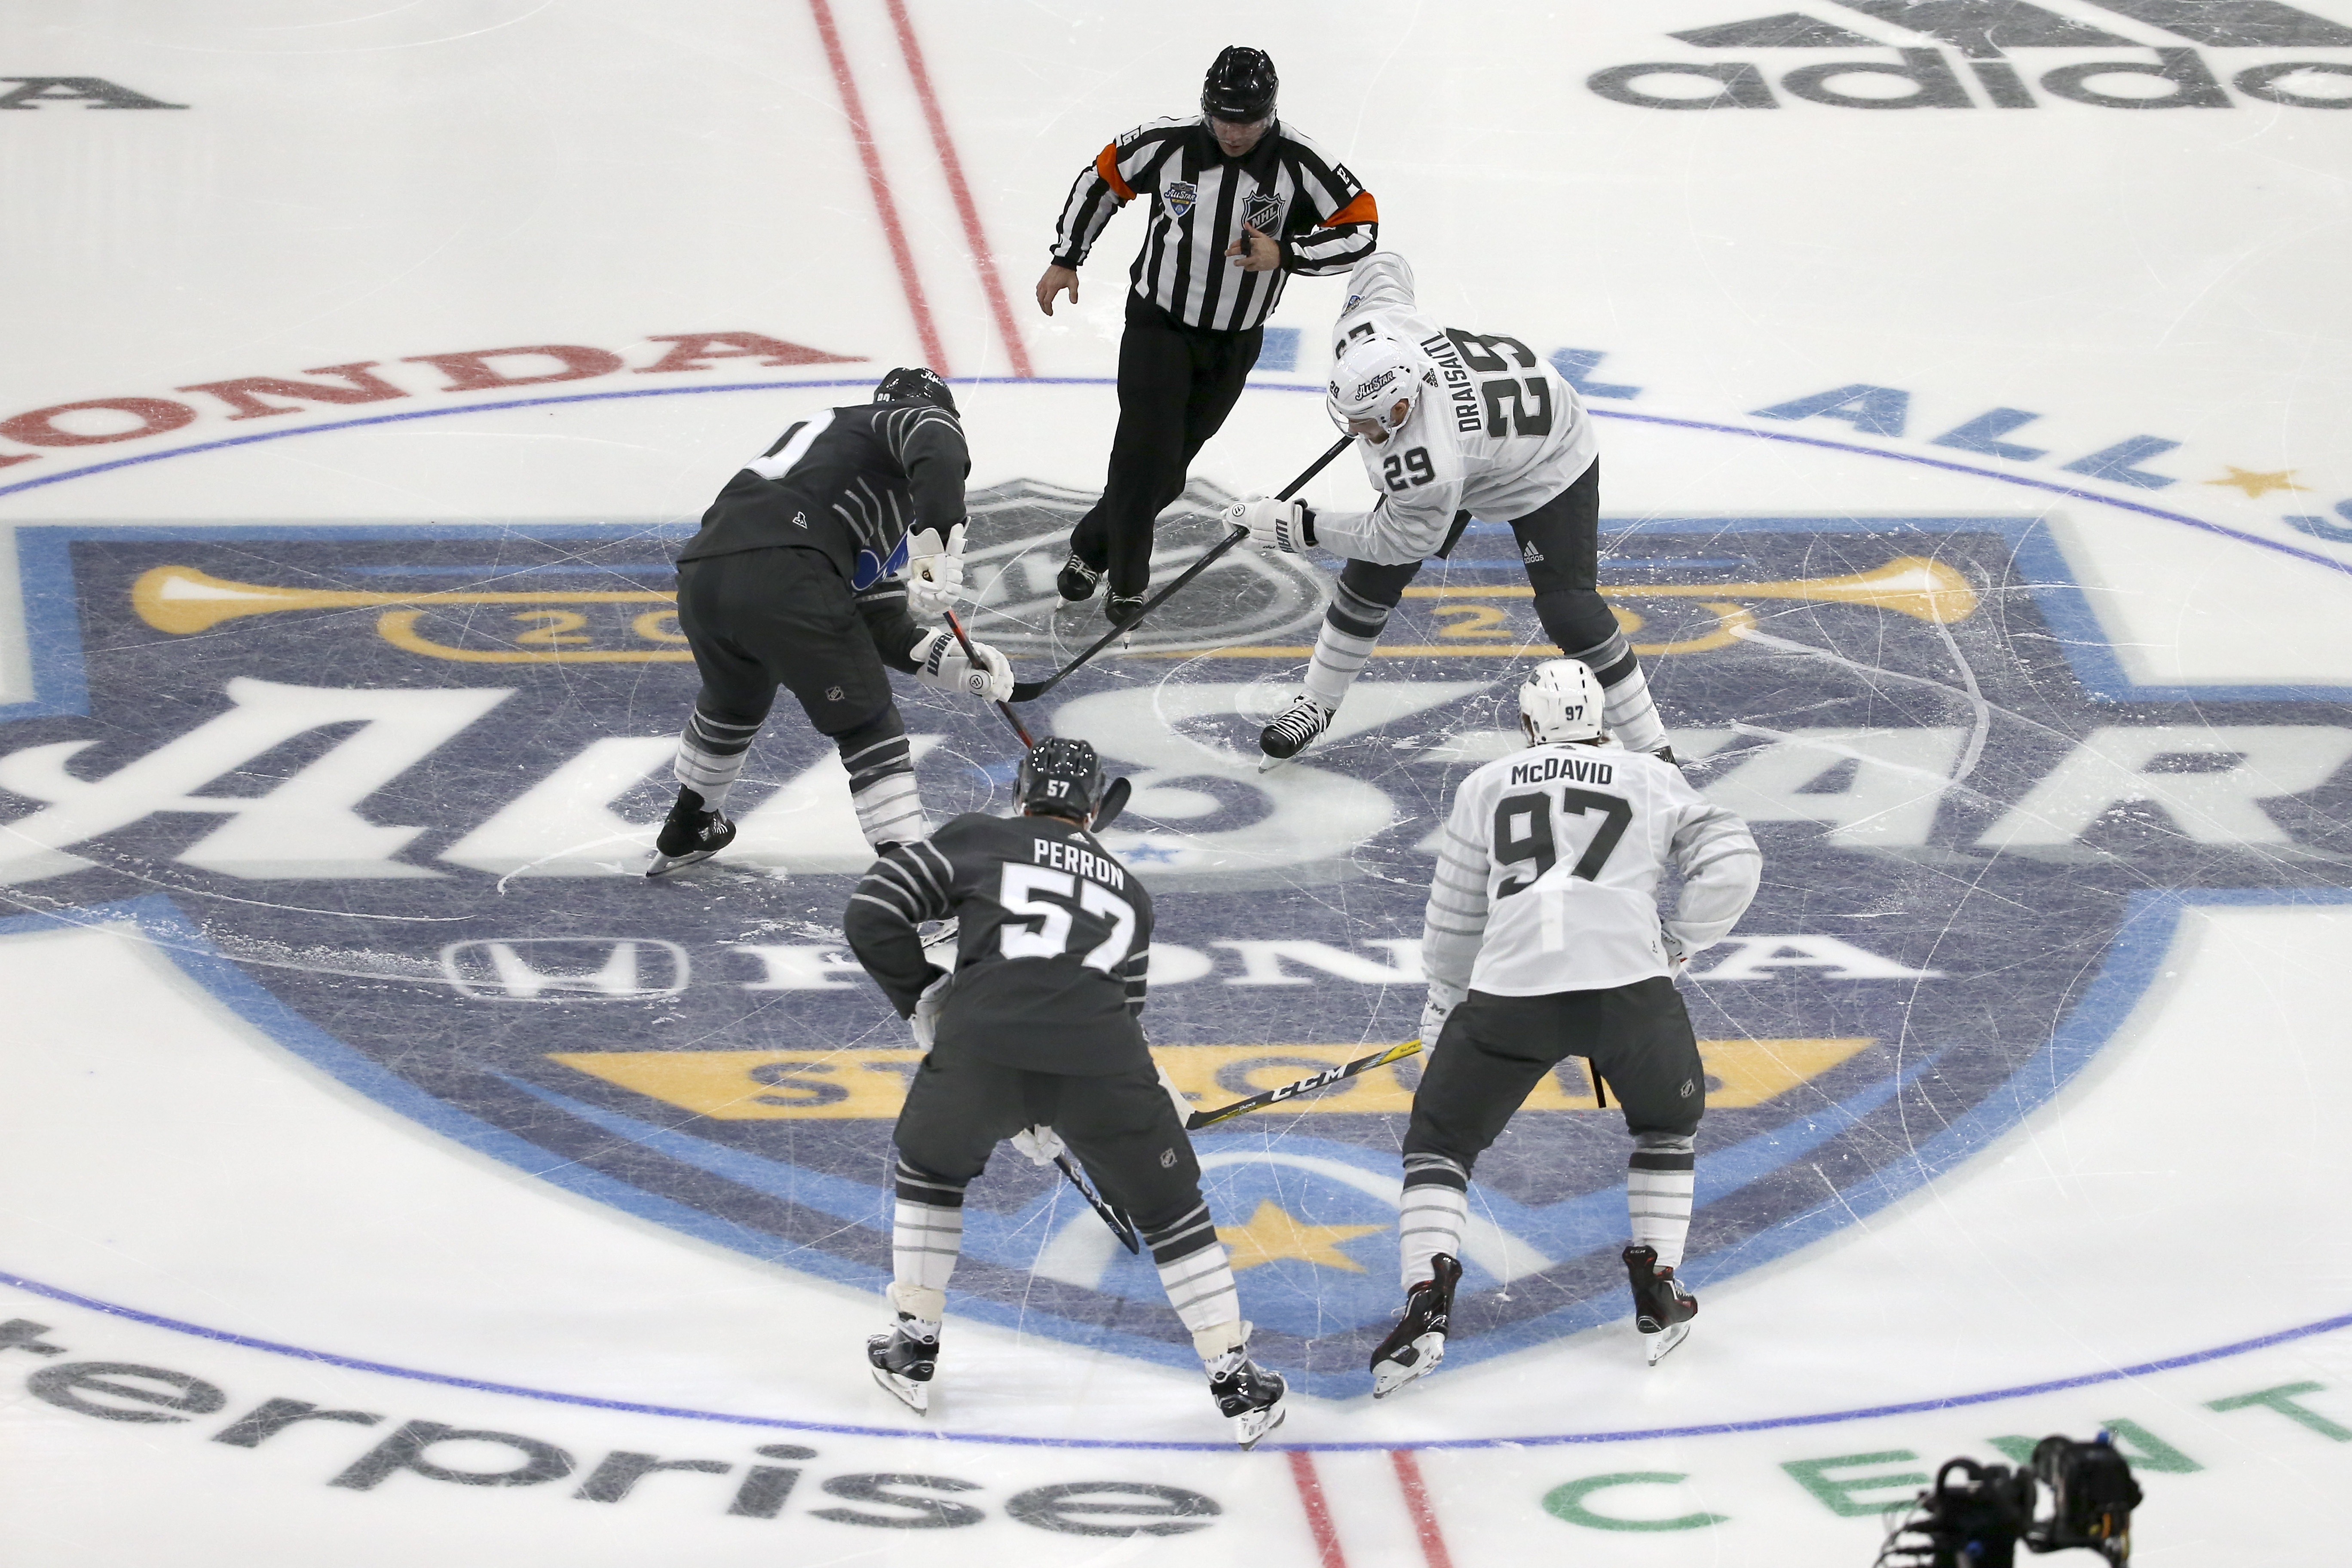 Here's why the NHL All-Star Game would be better at the start of season